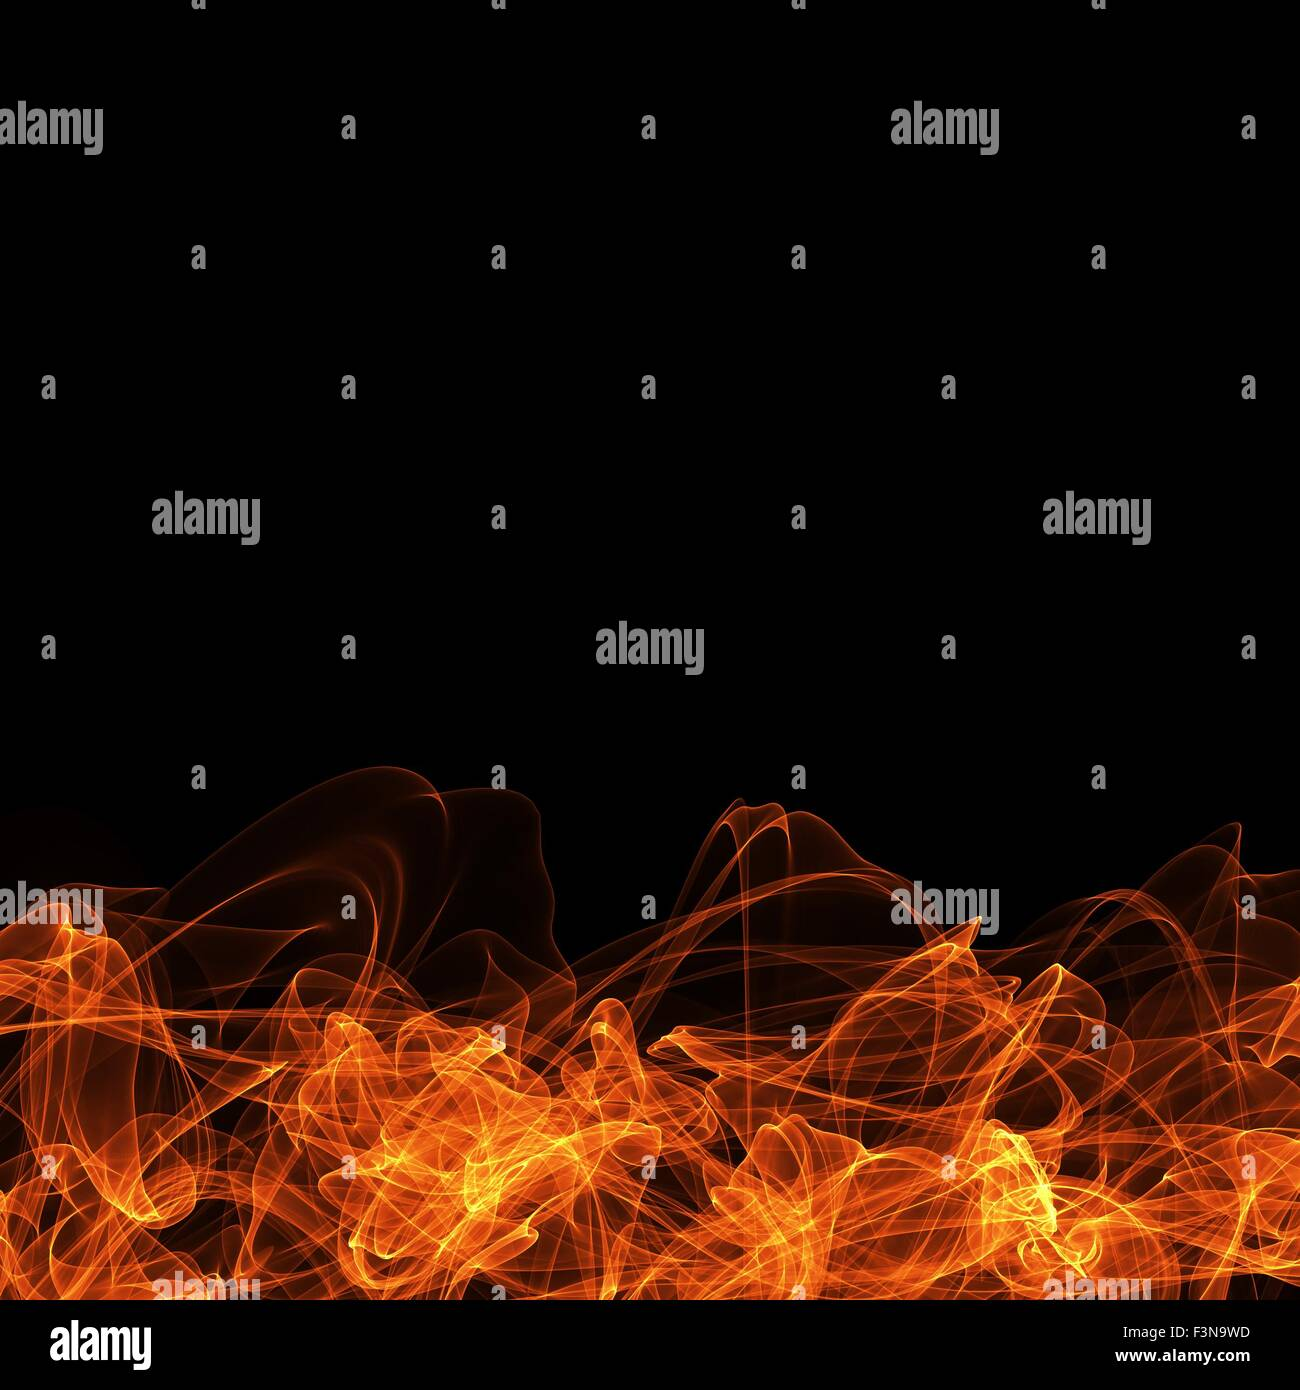 fire frame on black background template for website computer